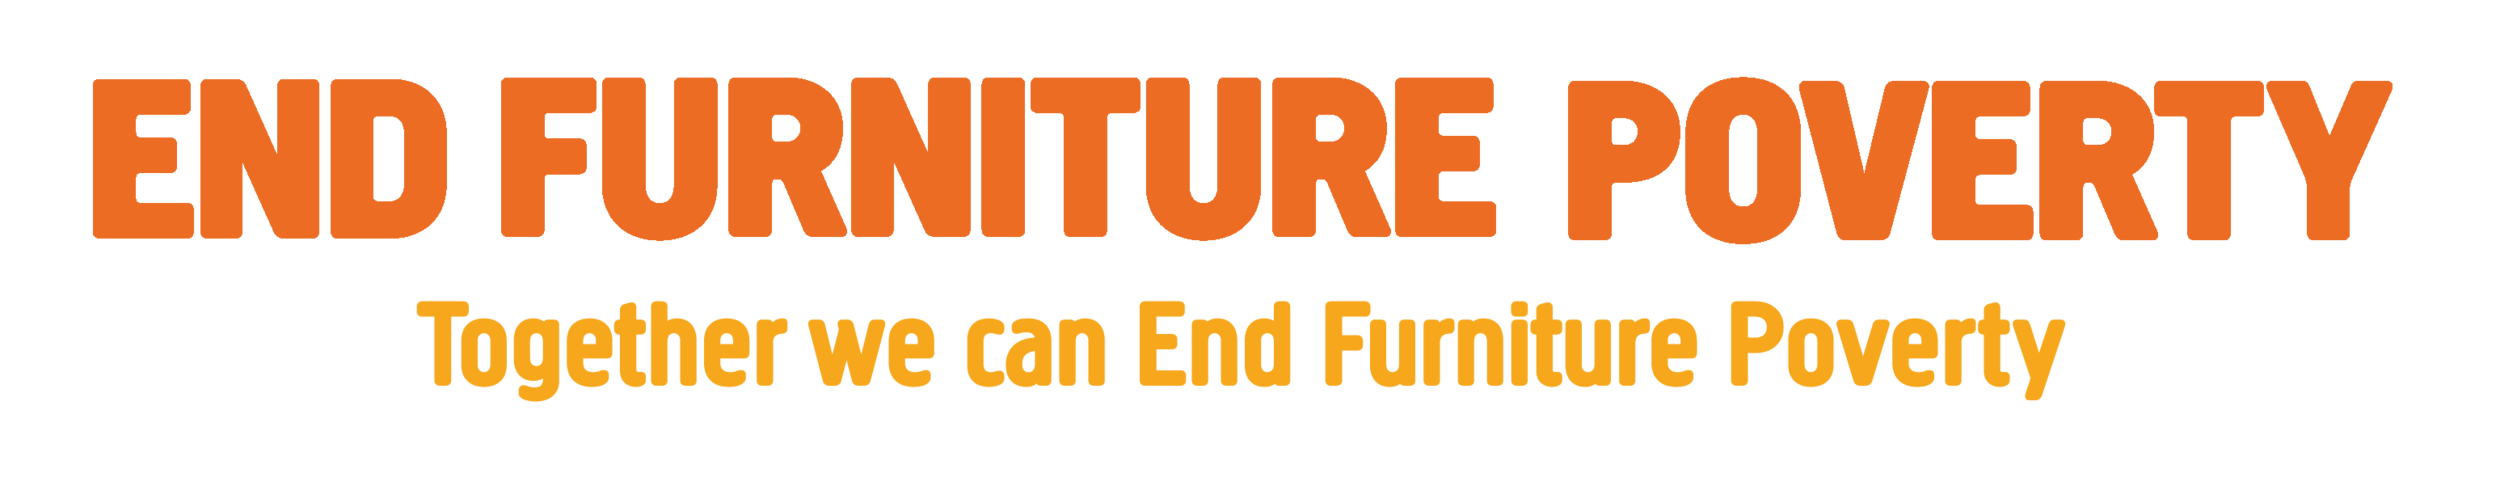 End-furntiure-poverty.png